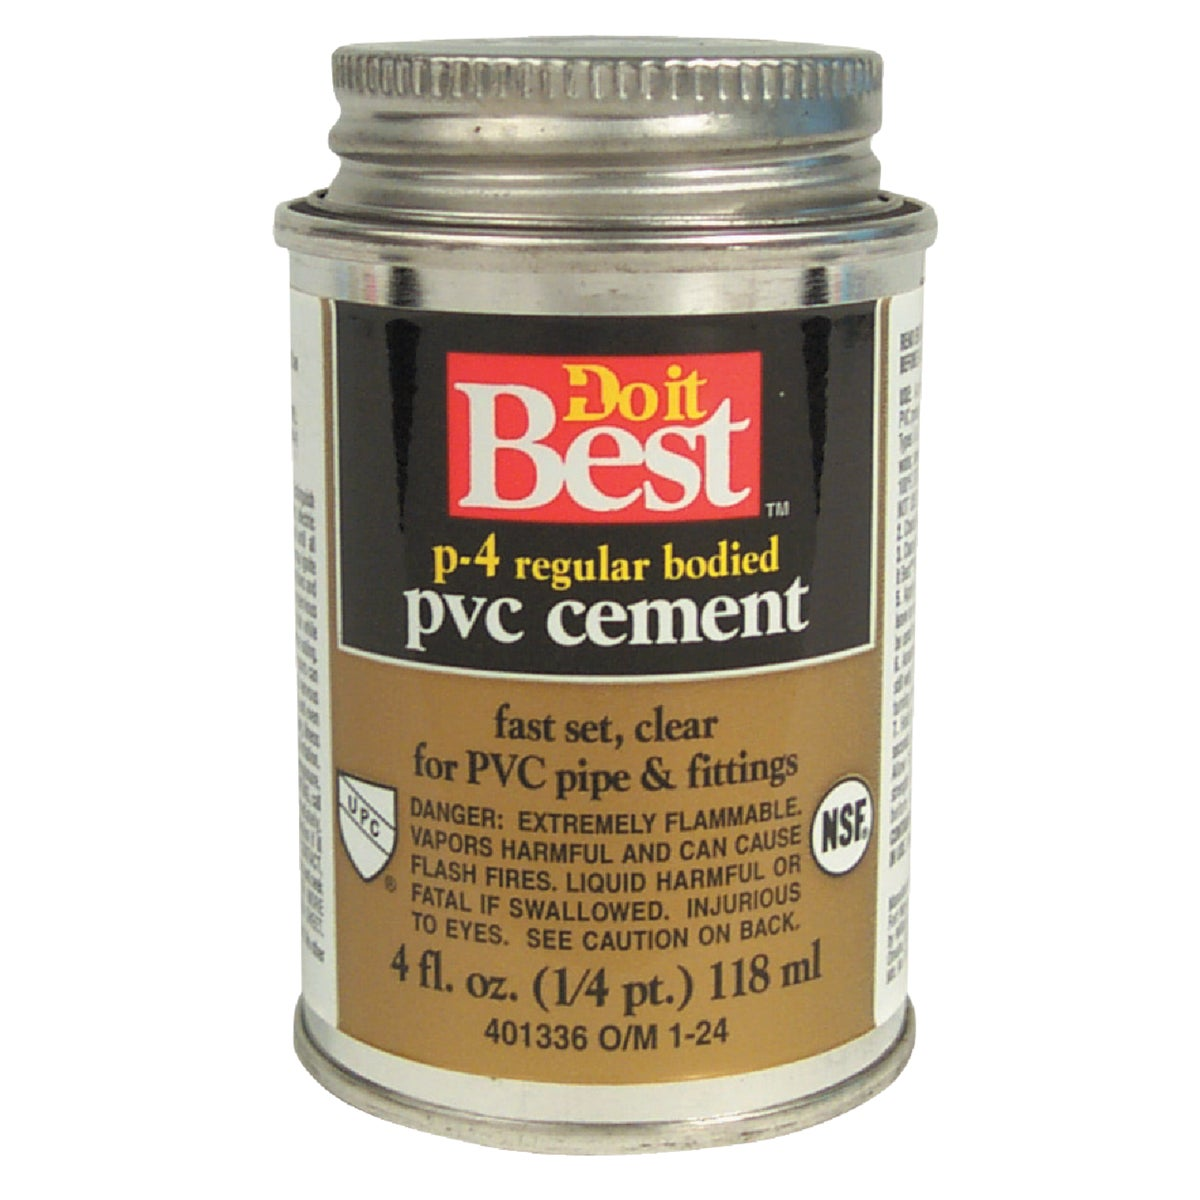 1/4 PINT PVC CEMENT - 018099 by Wm H Harvey Co